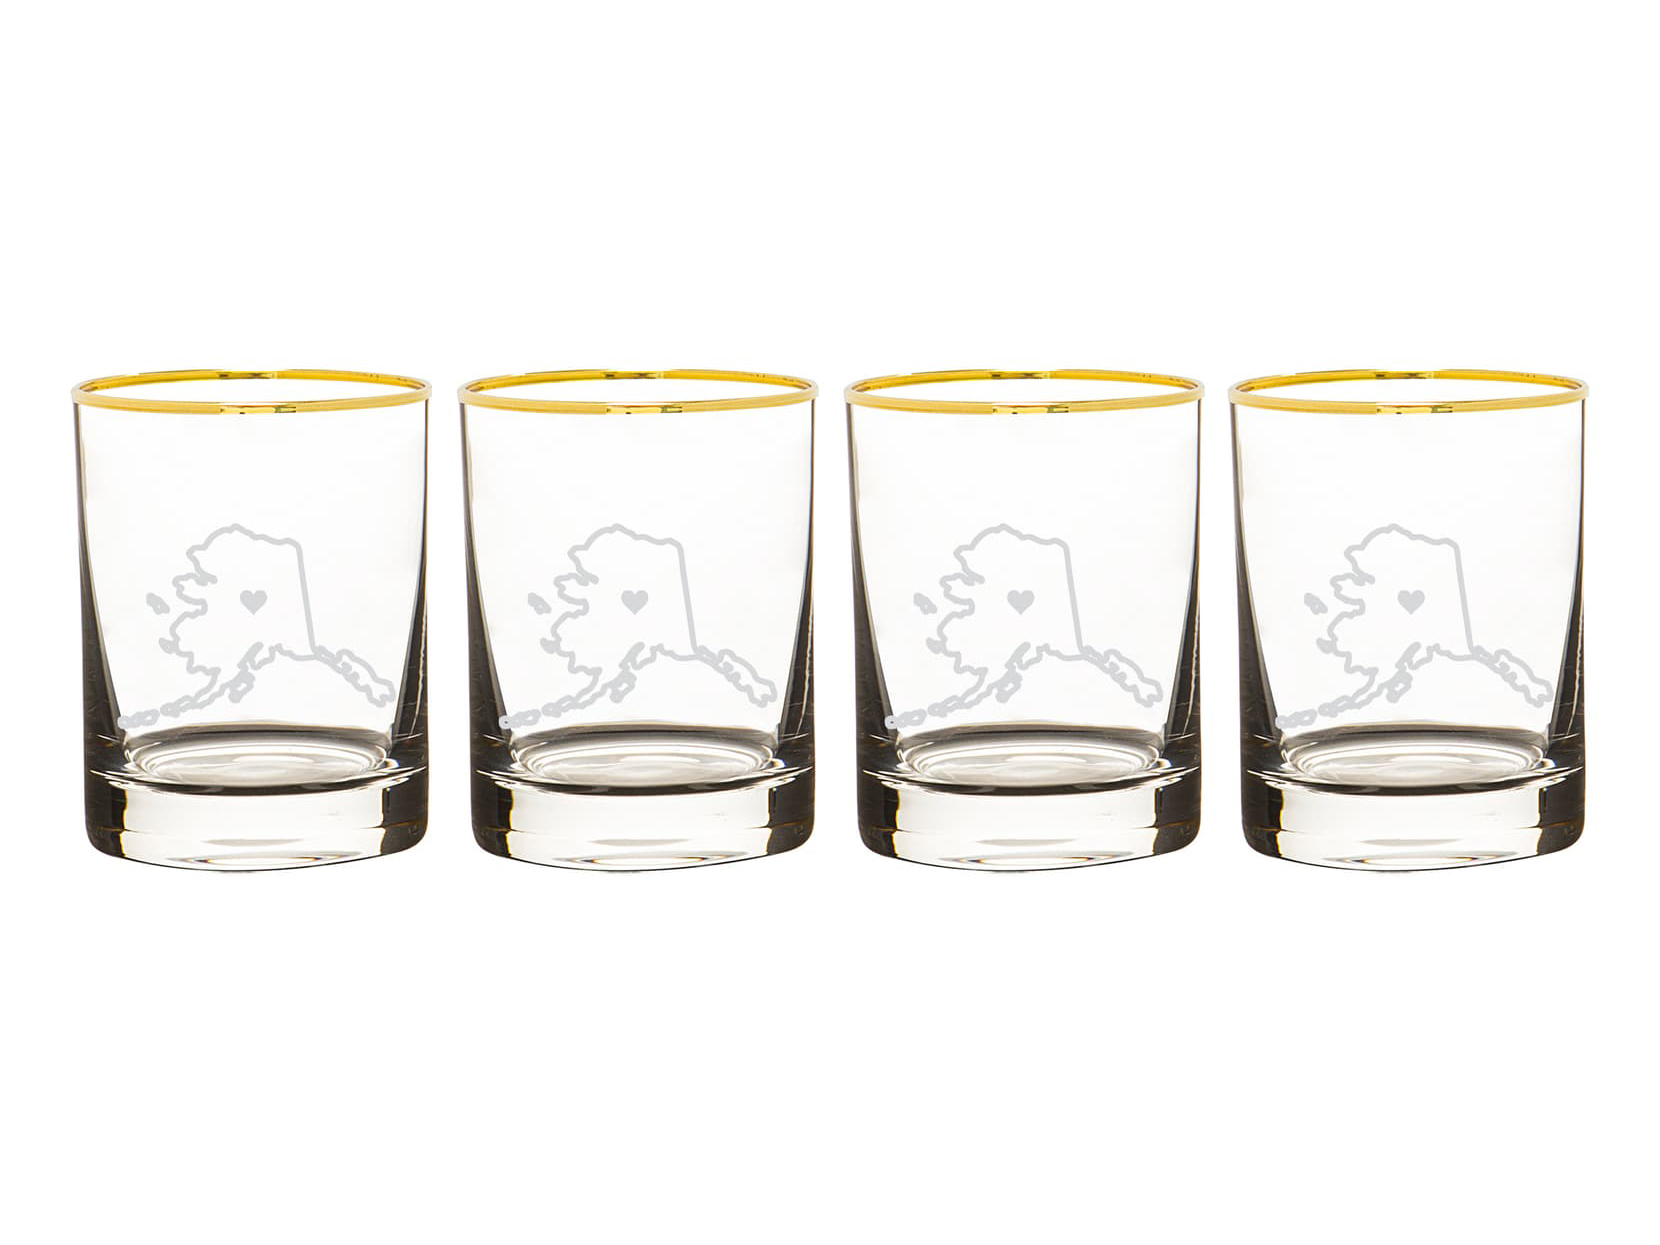 Cathy's Concepts State Love Set of 4 Gold Rimmed Whiskey Glasses